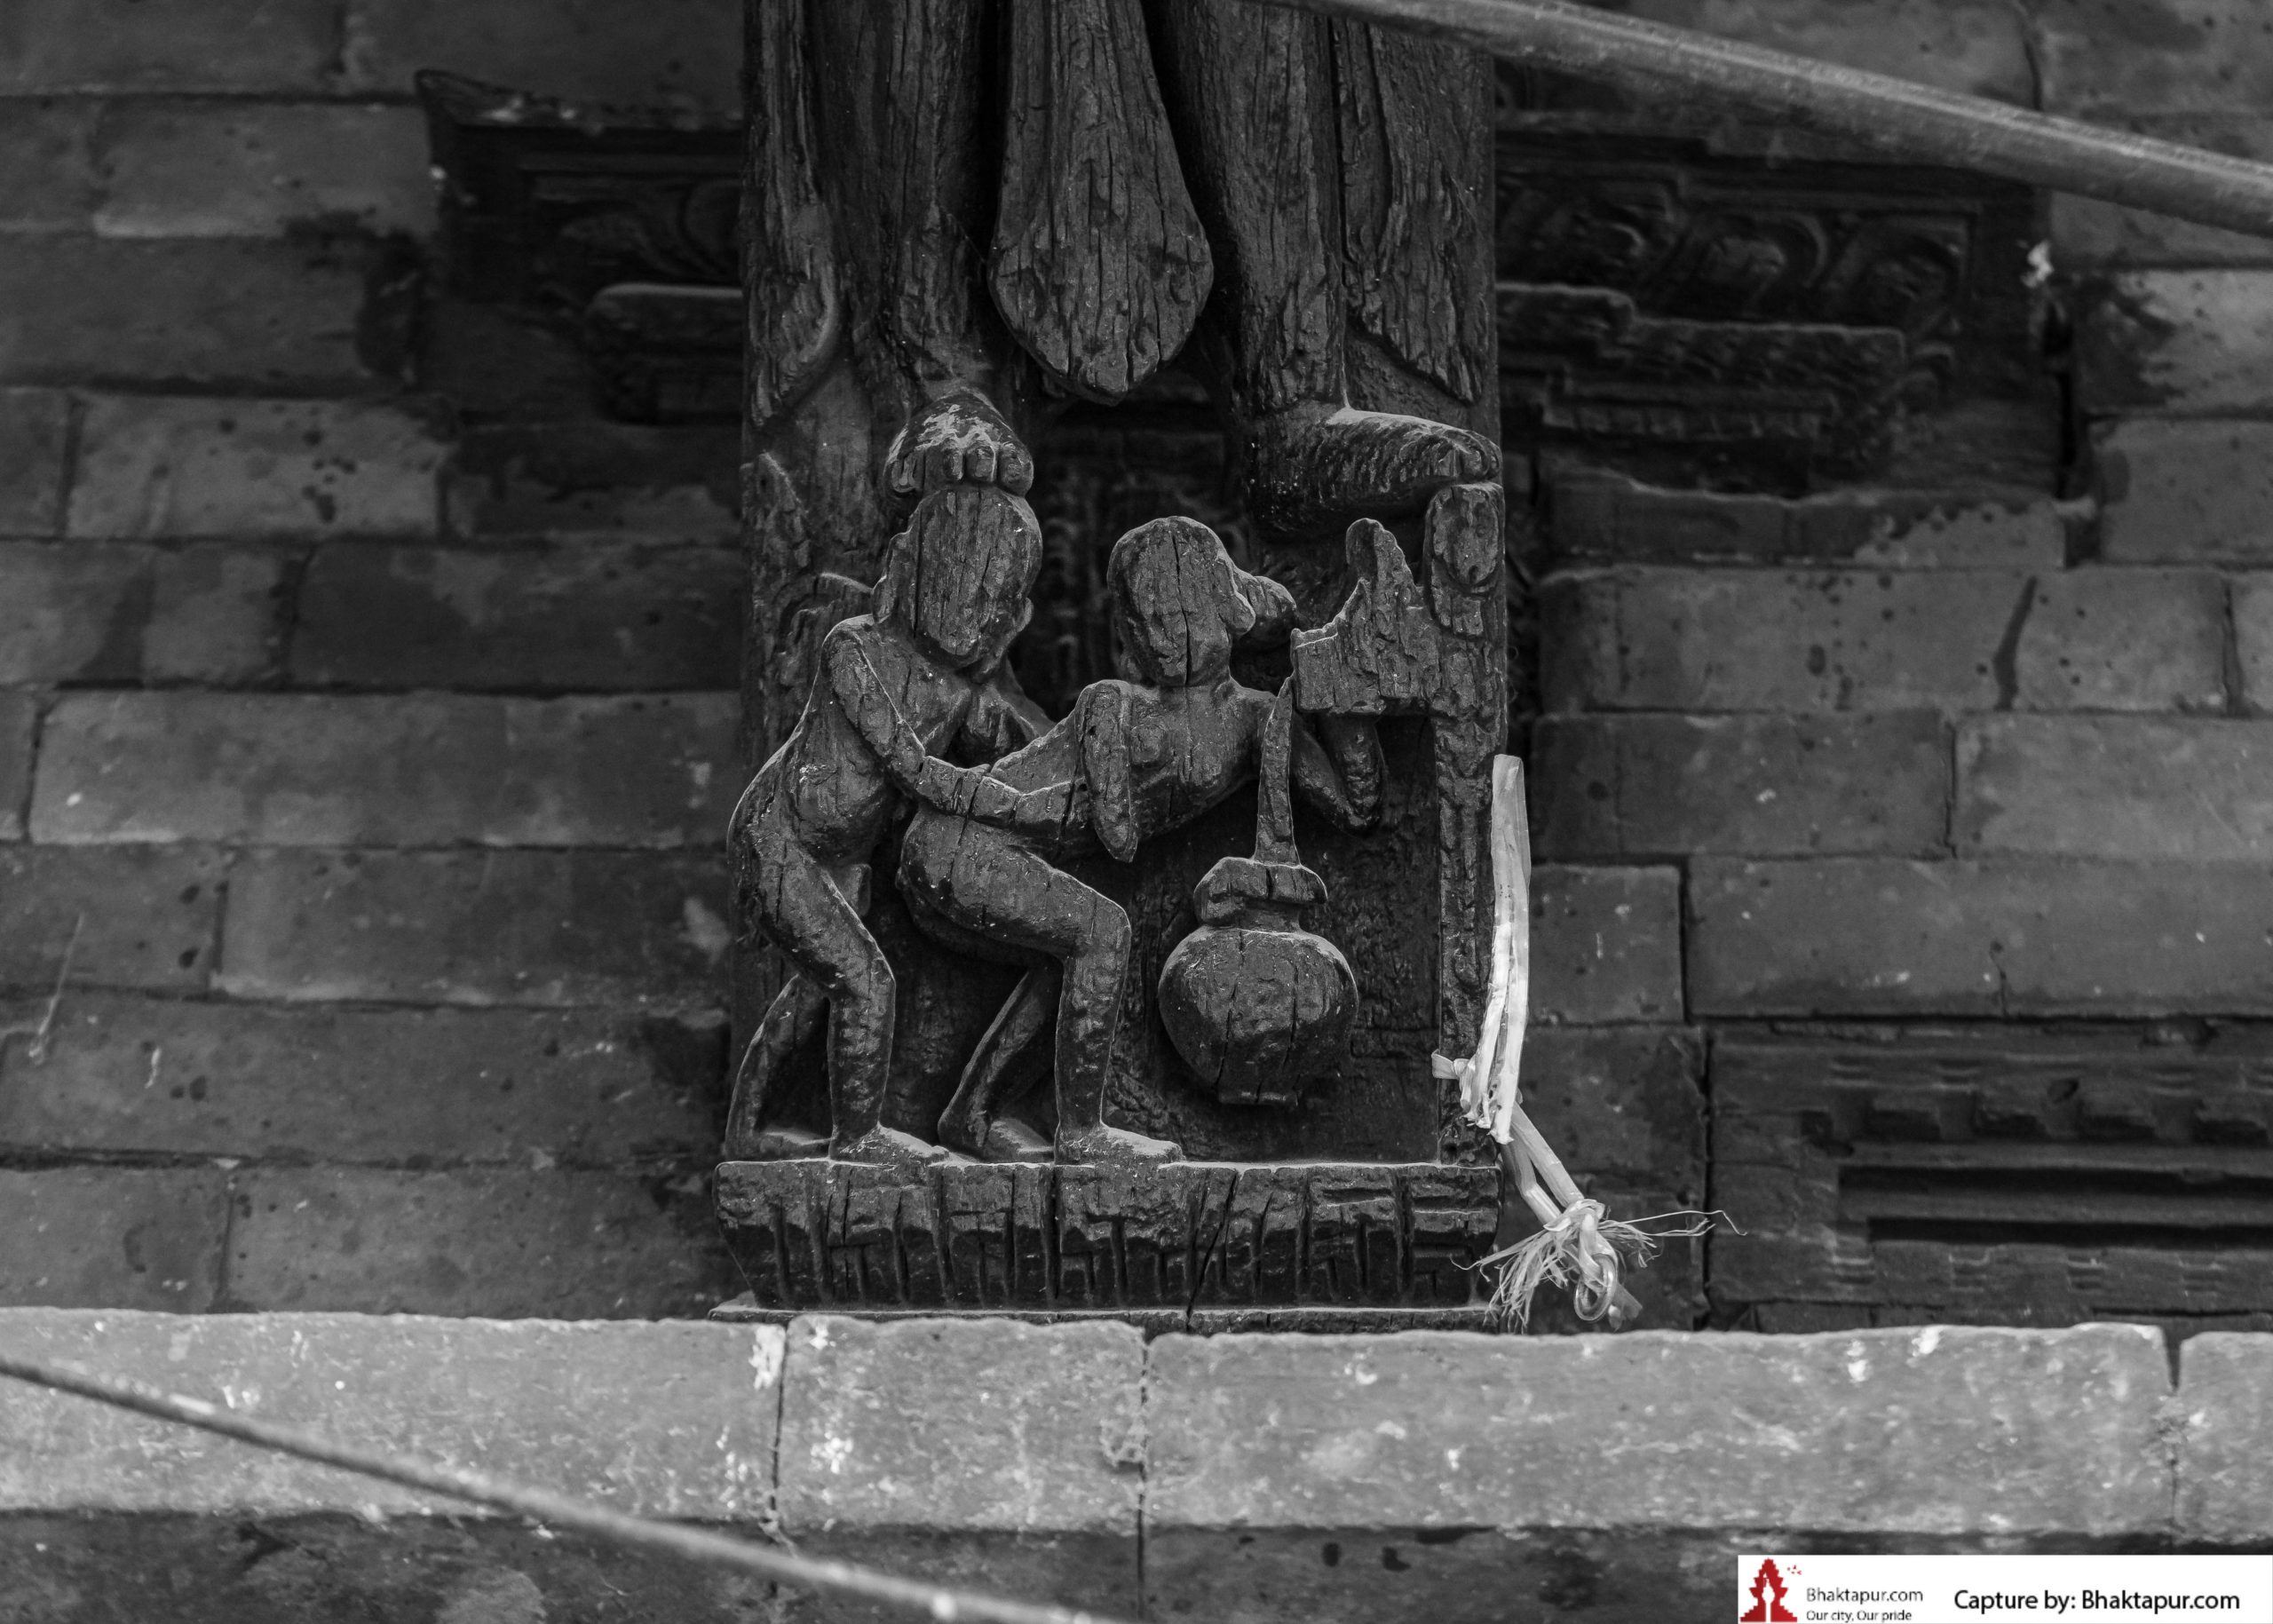 https://www.bhaktapur.com/wp-content/uploads/2021/08/erotic-carving-38-of-137-scaled.jpg